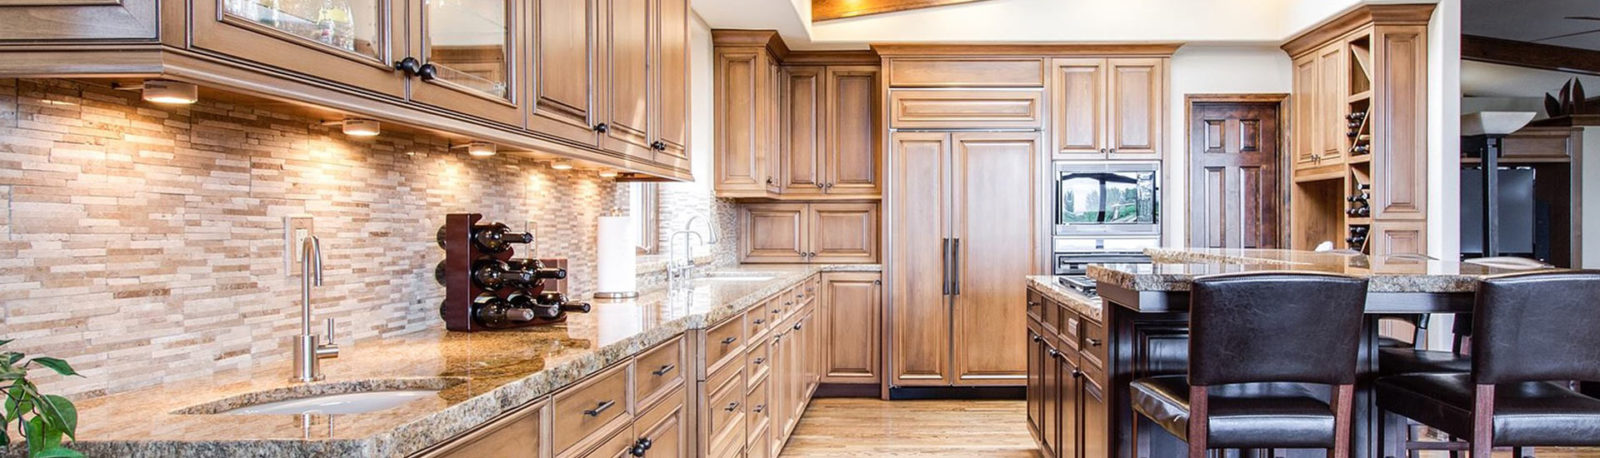 Kitchen Cabinets in Boulder City NV, Henderson NV, Las Vegas, Spring Valley NV